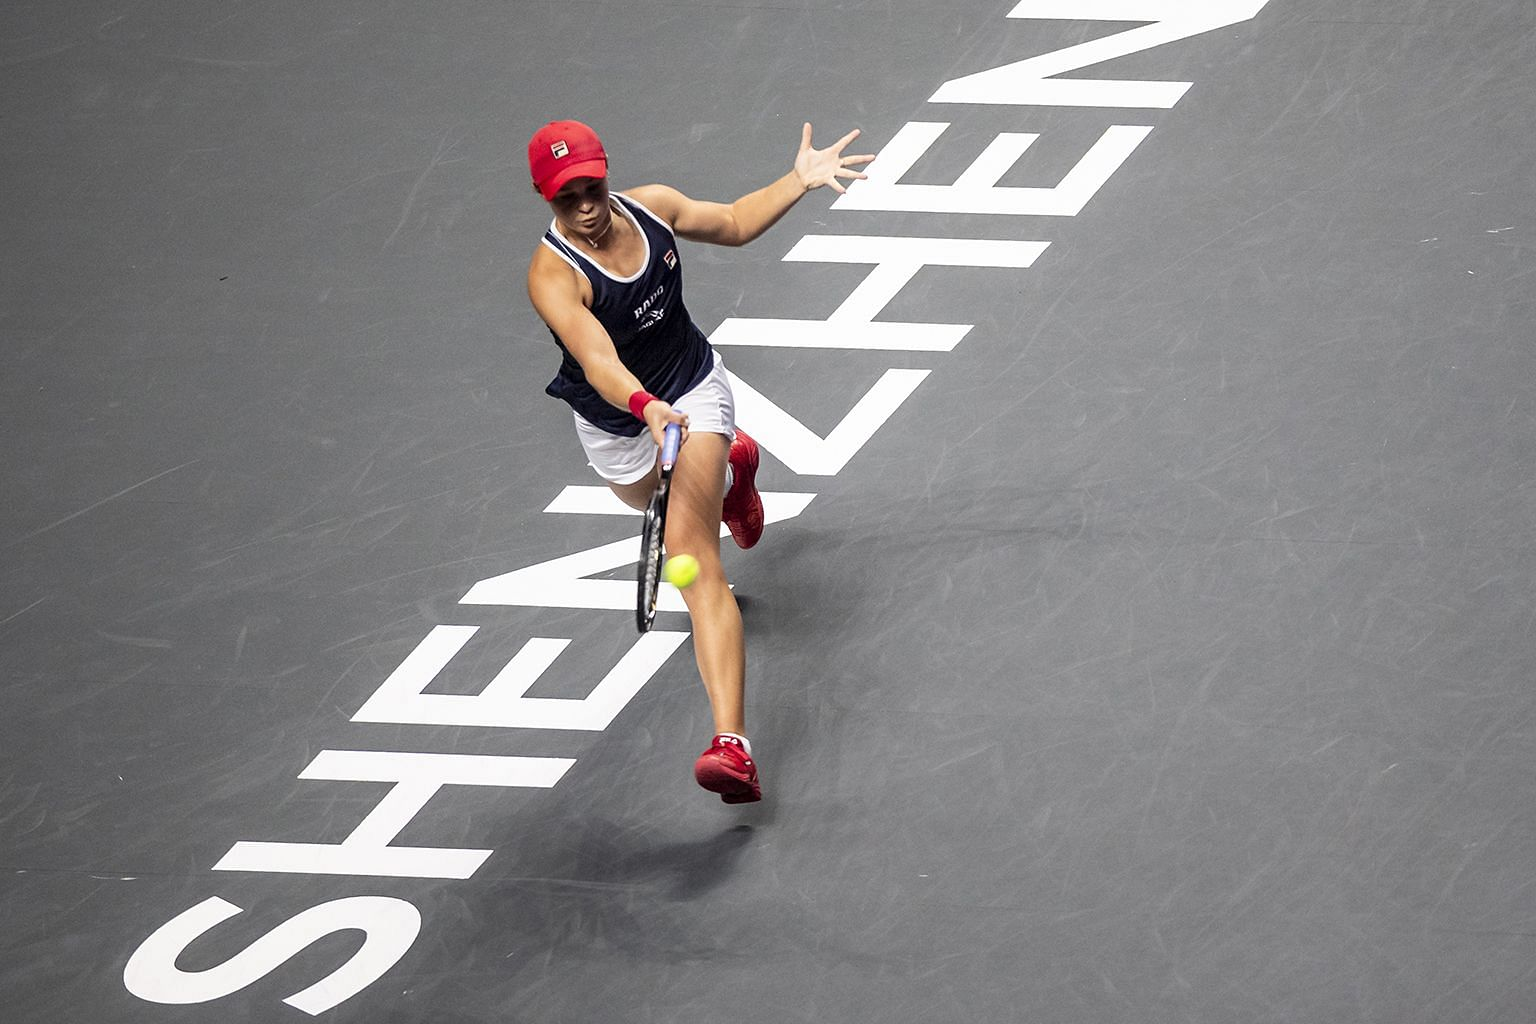 Australia's Ashleigh Barty in action against Ukraine's Elina Svitolina at the WTA Finals' title decider in Shenzhen last year.